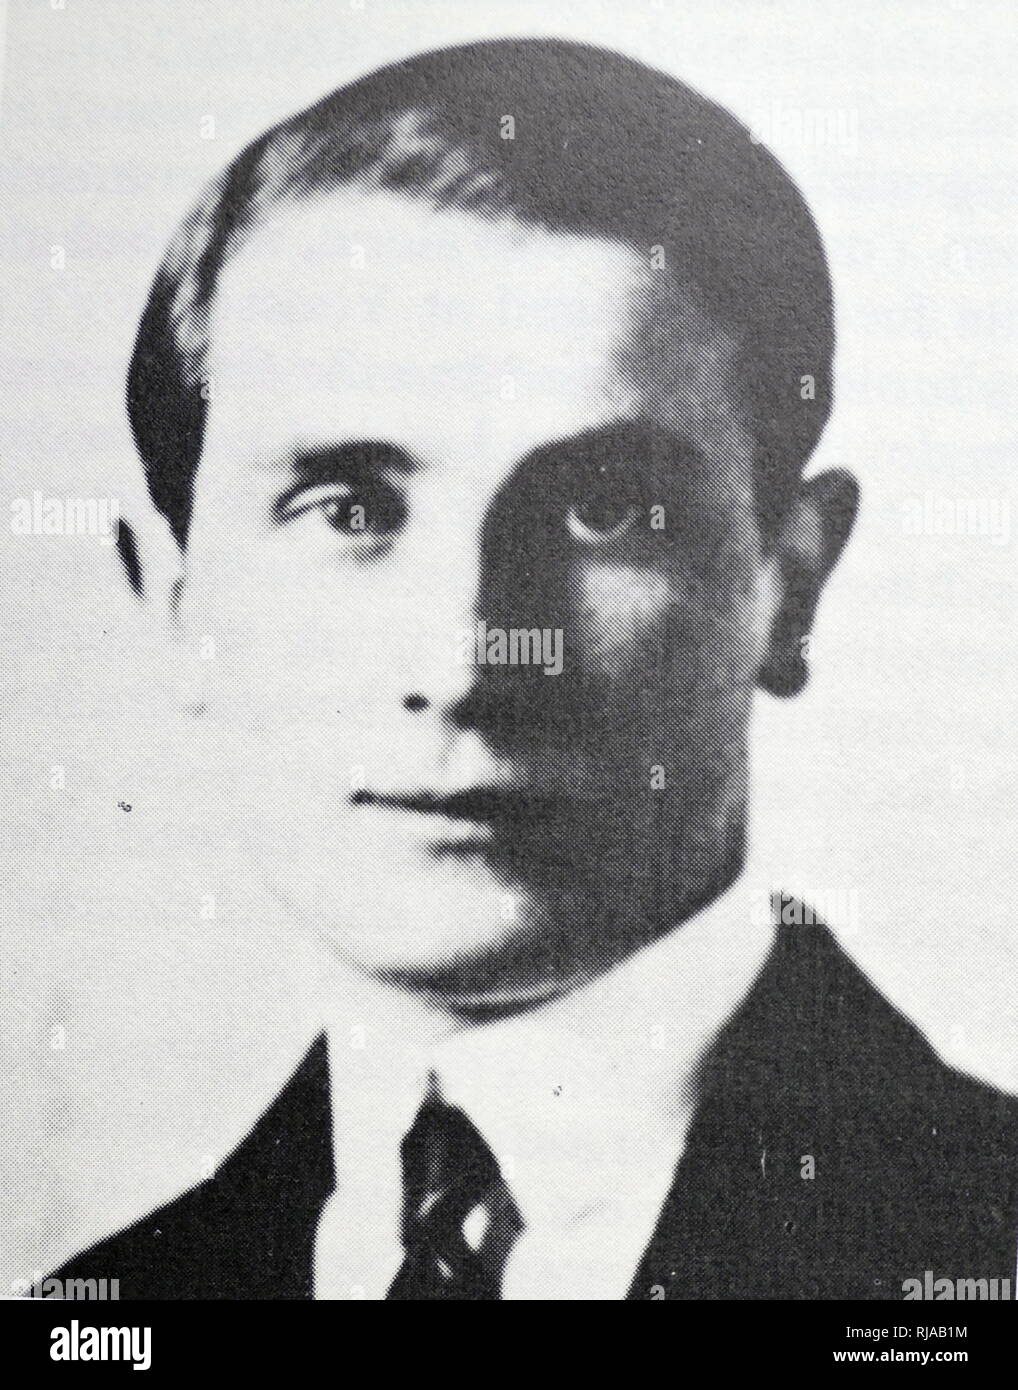 Prince Felix Yusupov, (1887 – 1967), Russian aristocrat known for participating in the assassination of Grigori Rasputin - Stock Image